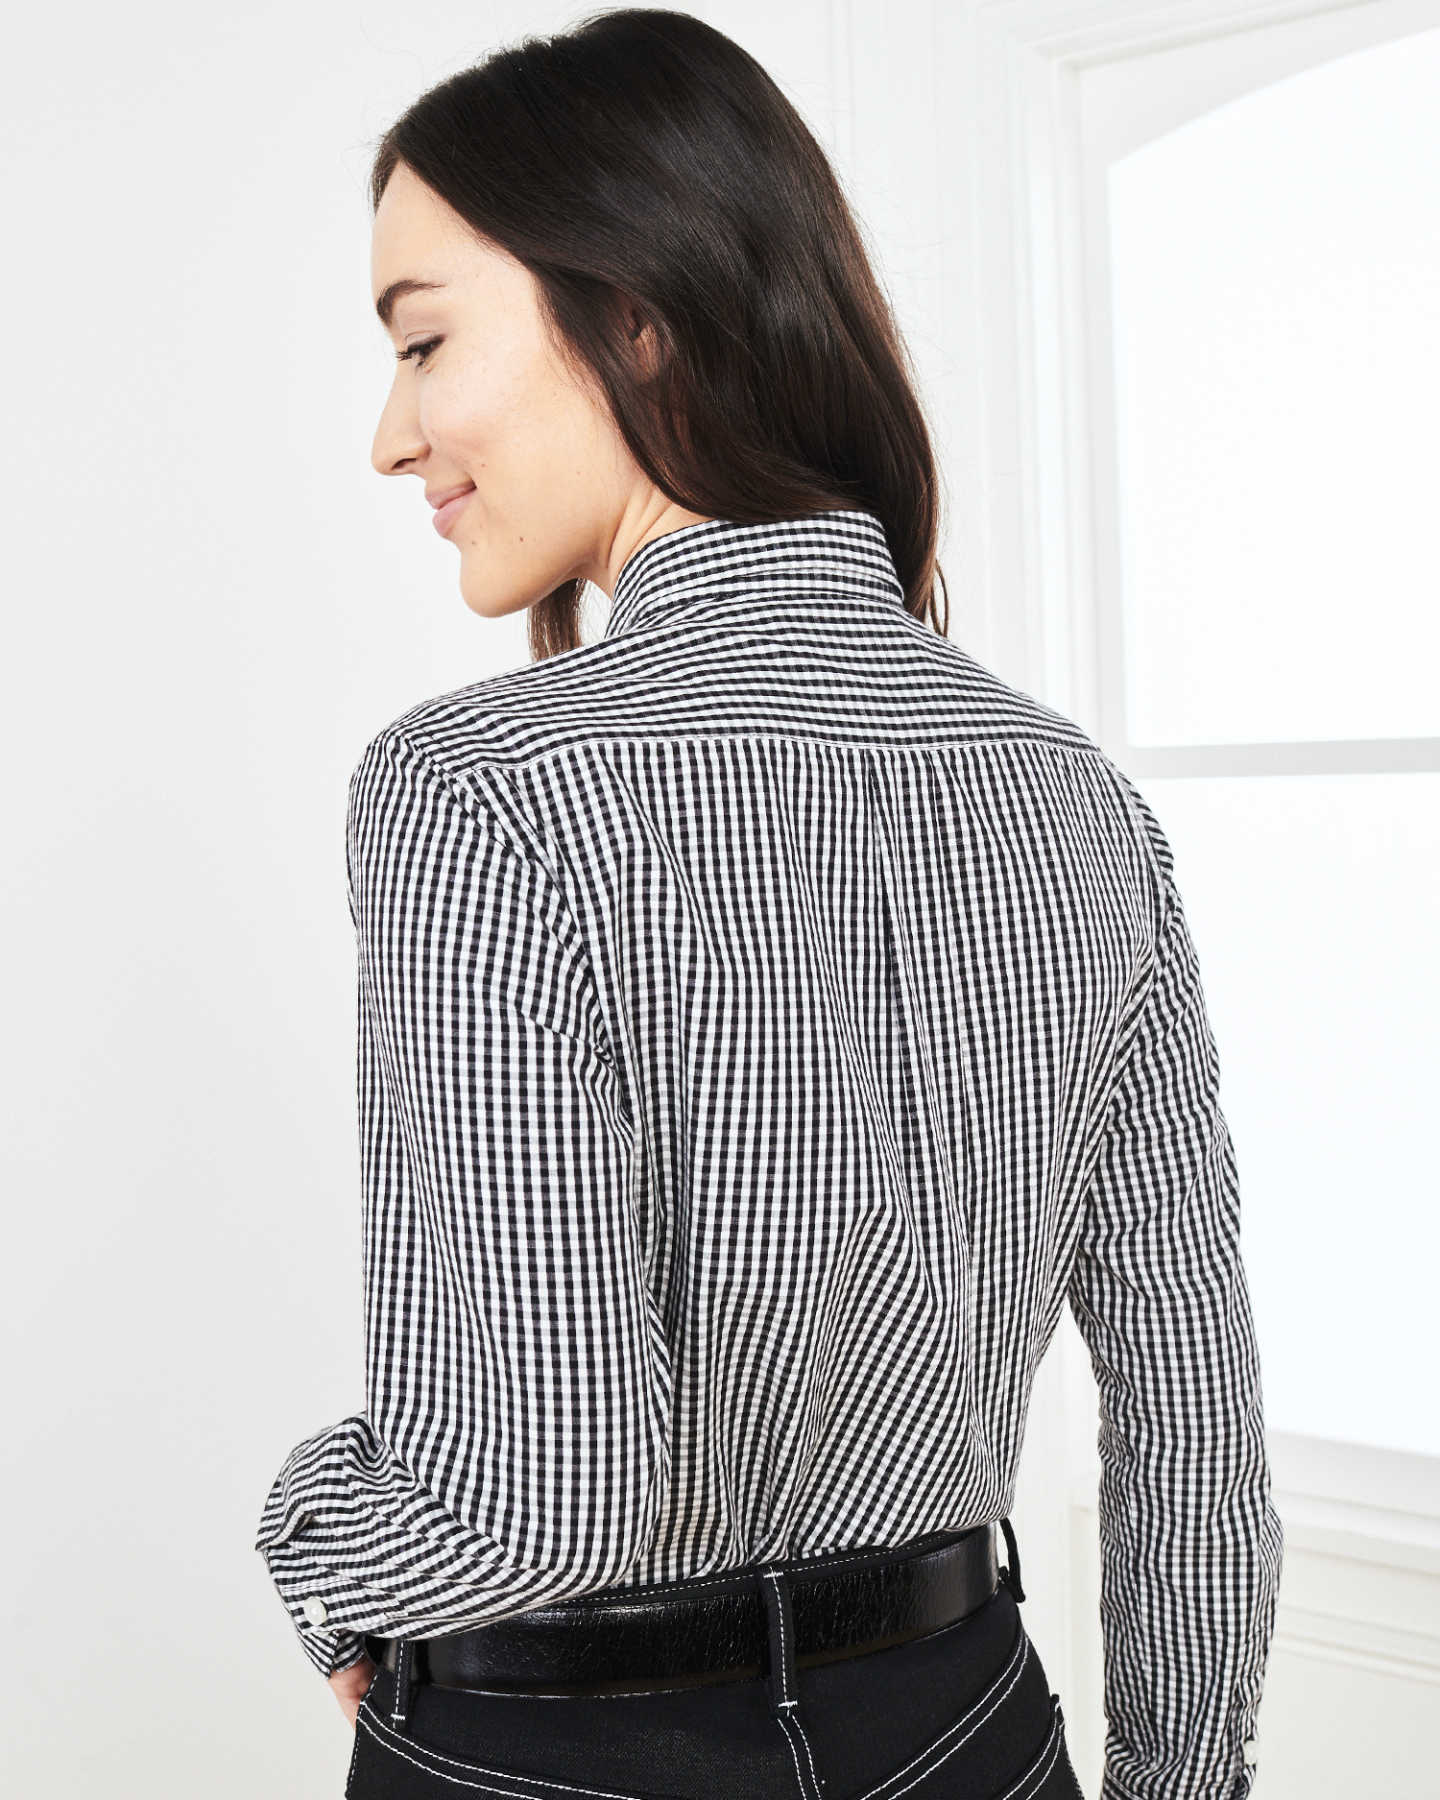 Carbon Wash Gingham Shirt - Black/White - 3